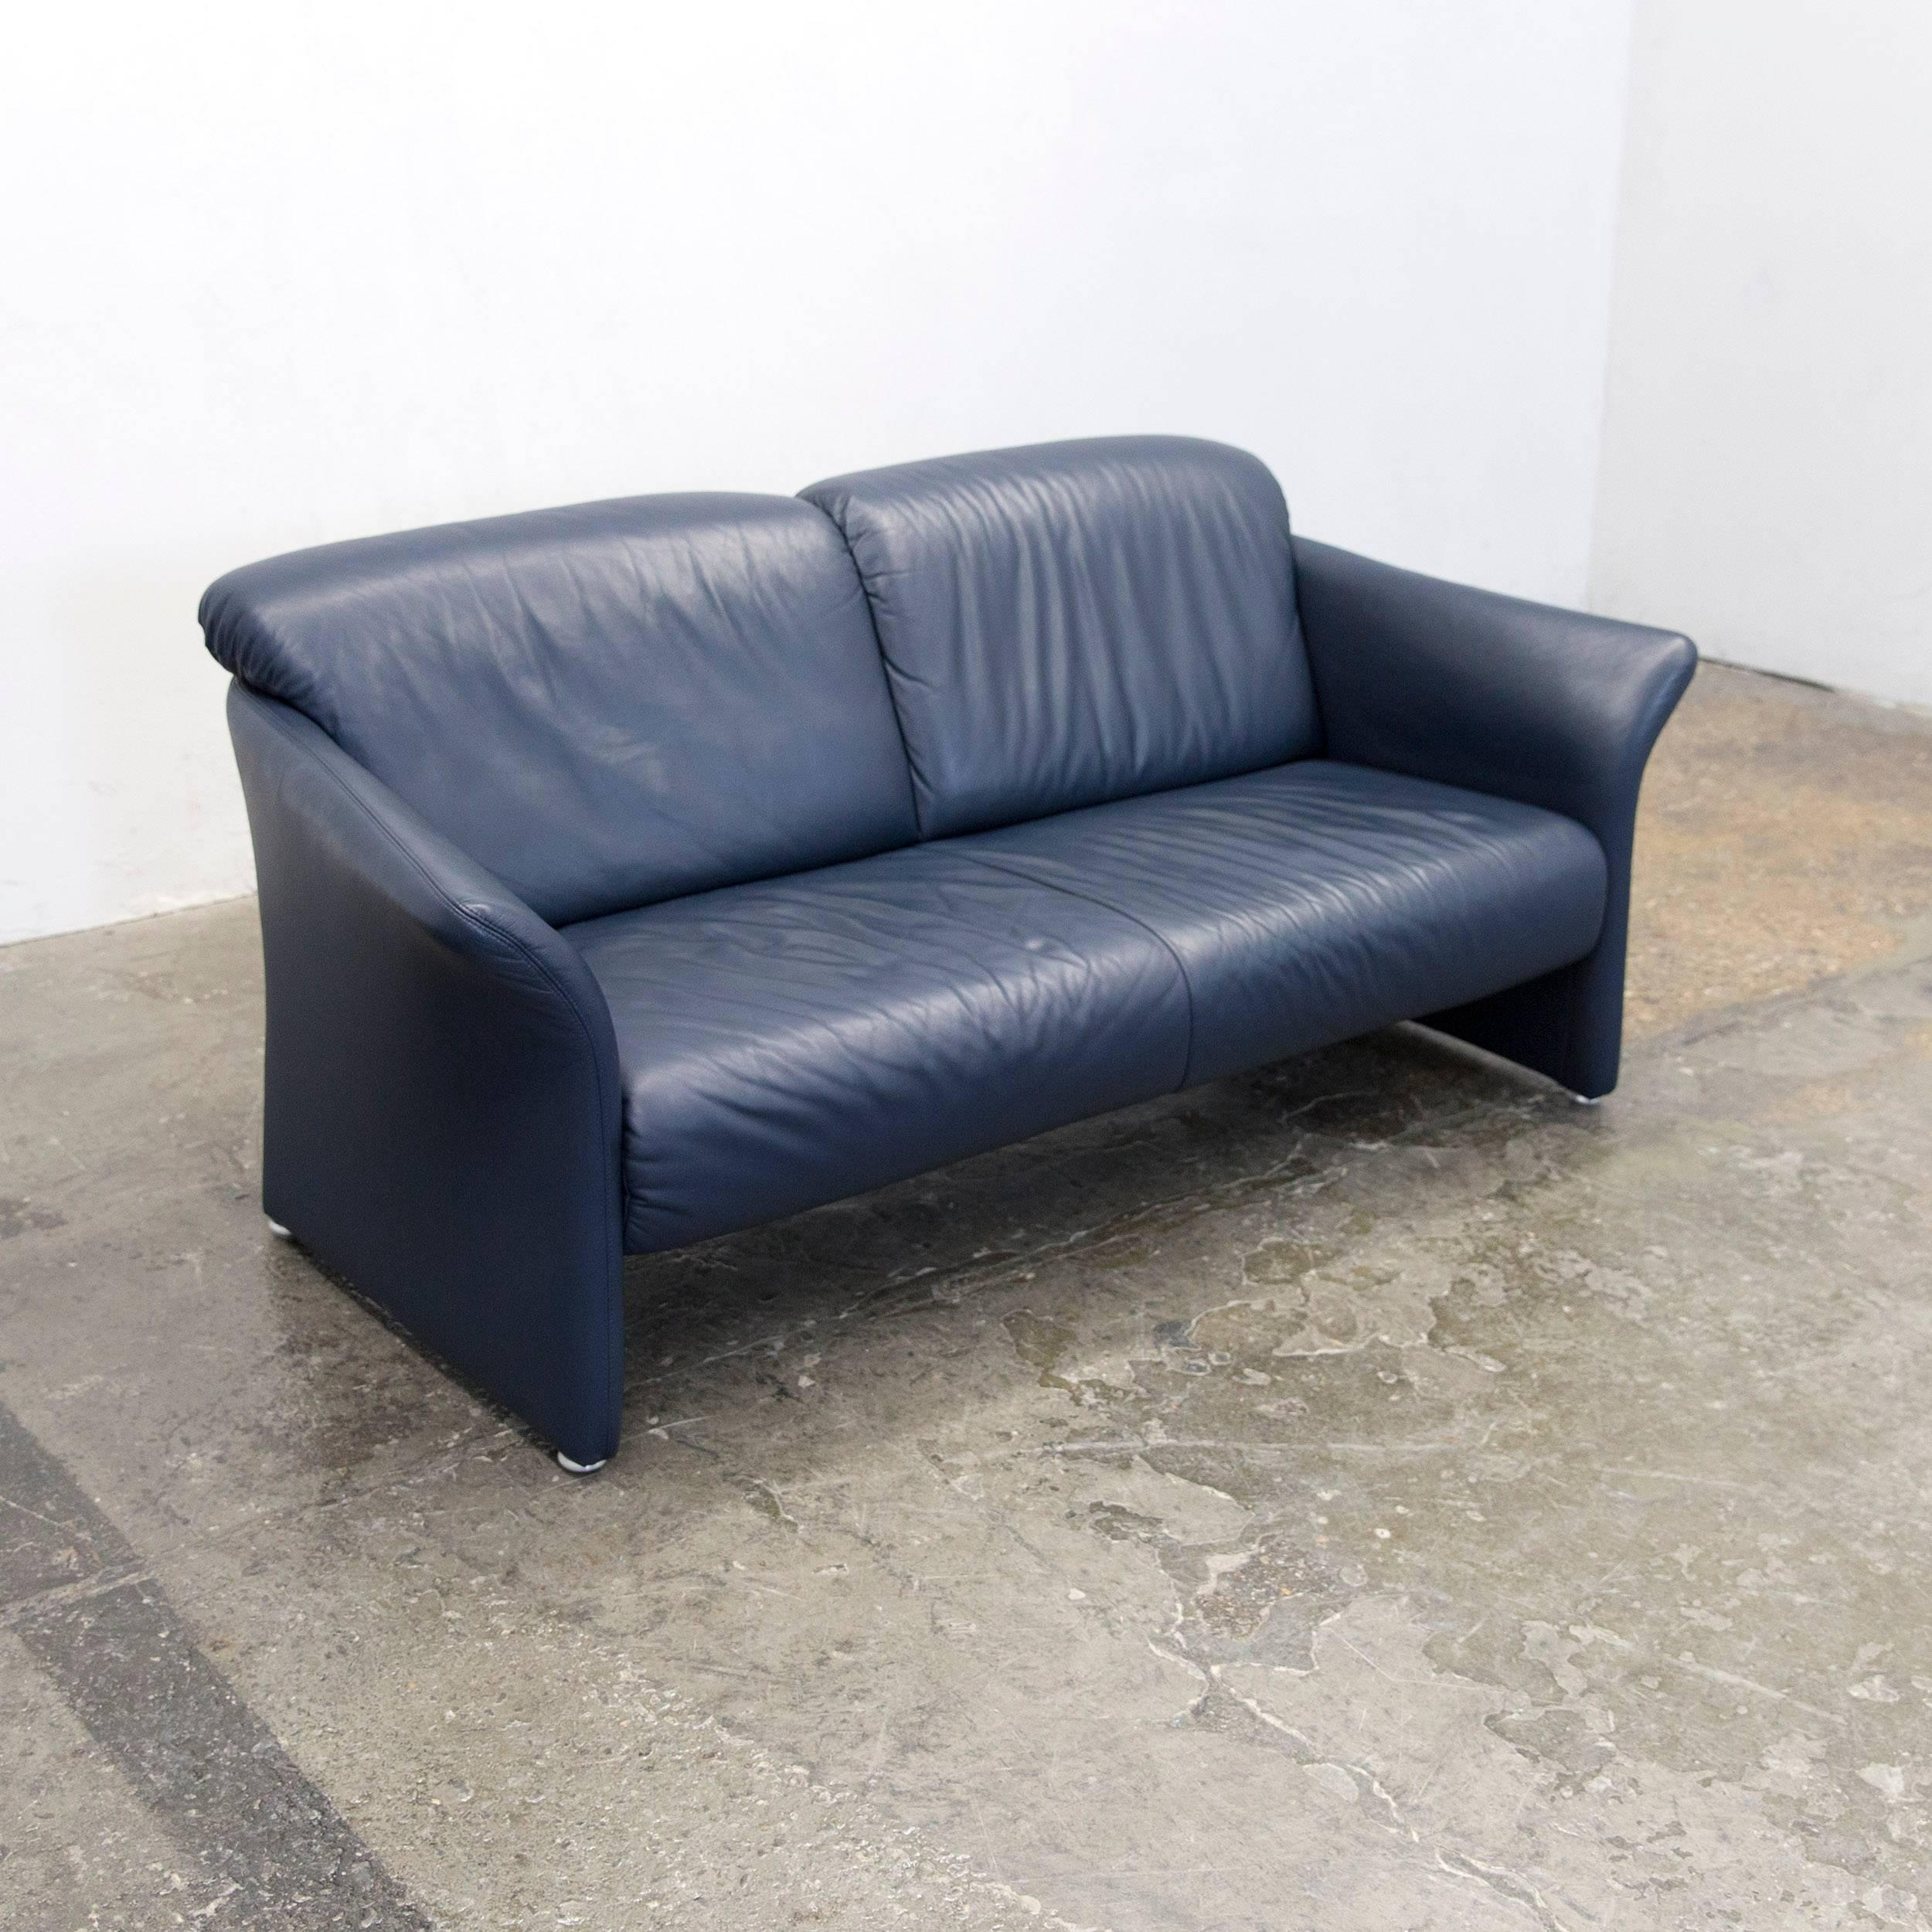 Exquisit Sofa Und Sessel Foto Von Koinor Designer Leather Dark Blue Couch Modern